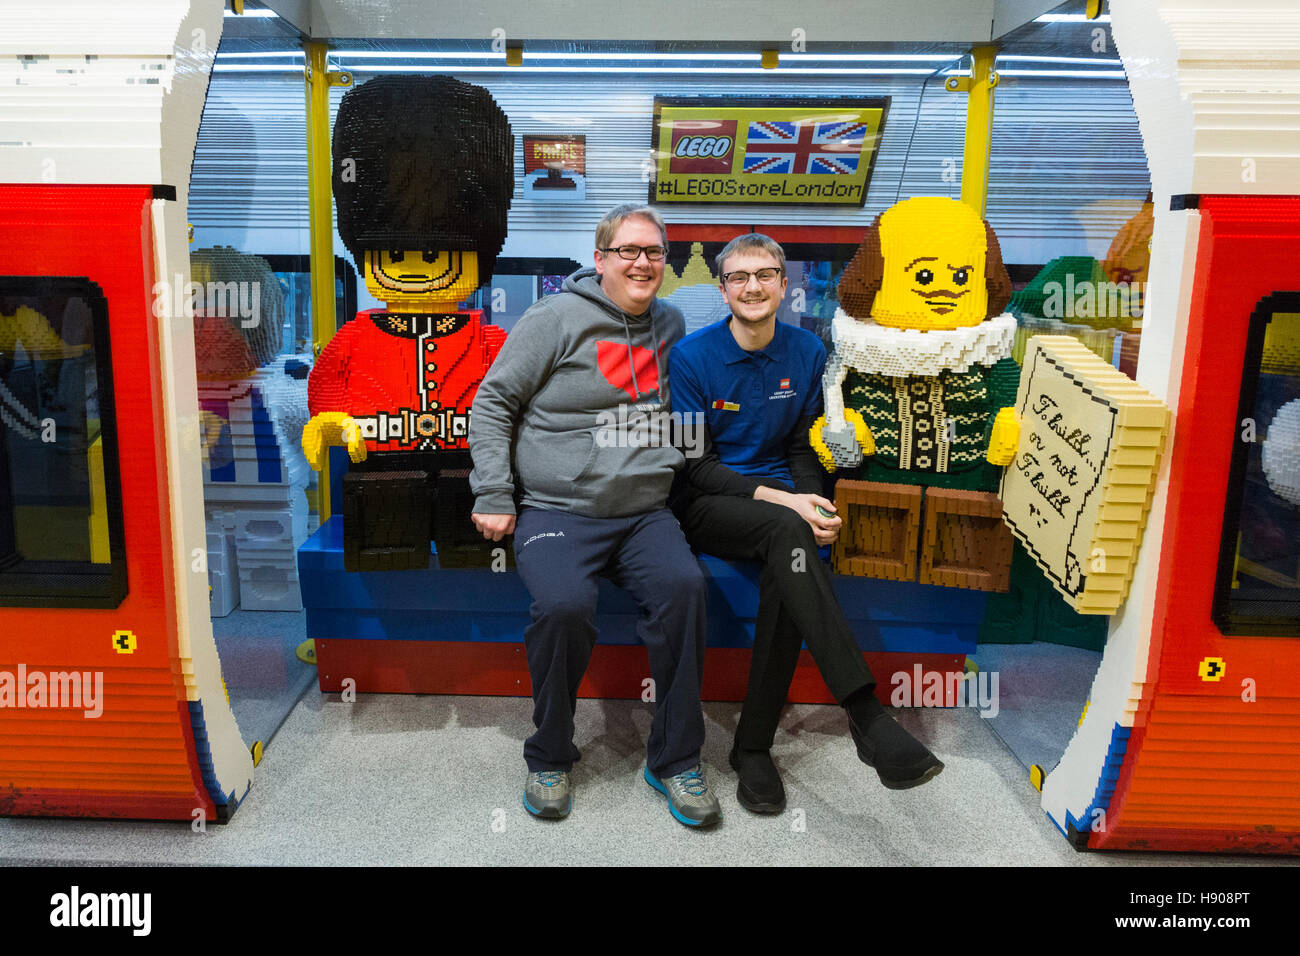 London, UK. 17 November 2016. A customer and a shop assistant take a seat in a tube train made of LEGO bricks. London's - Stock Image